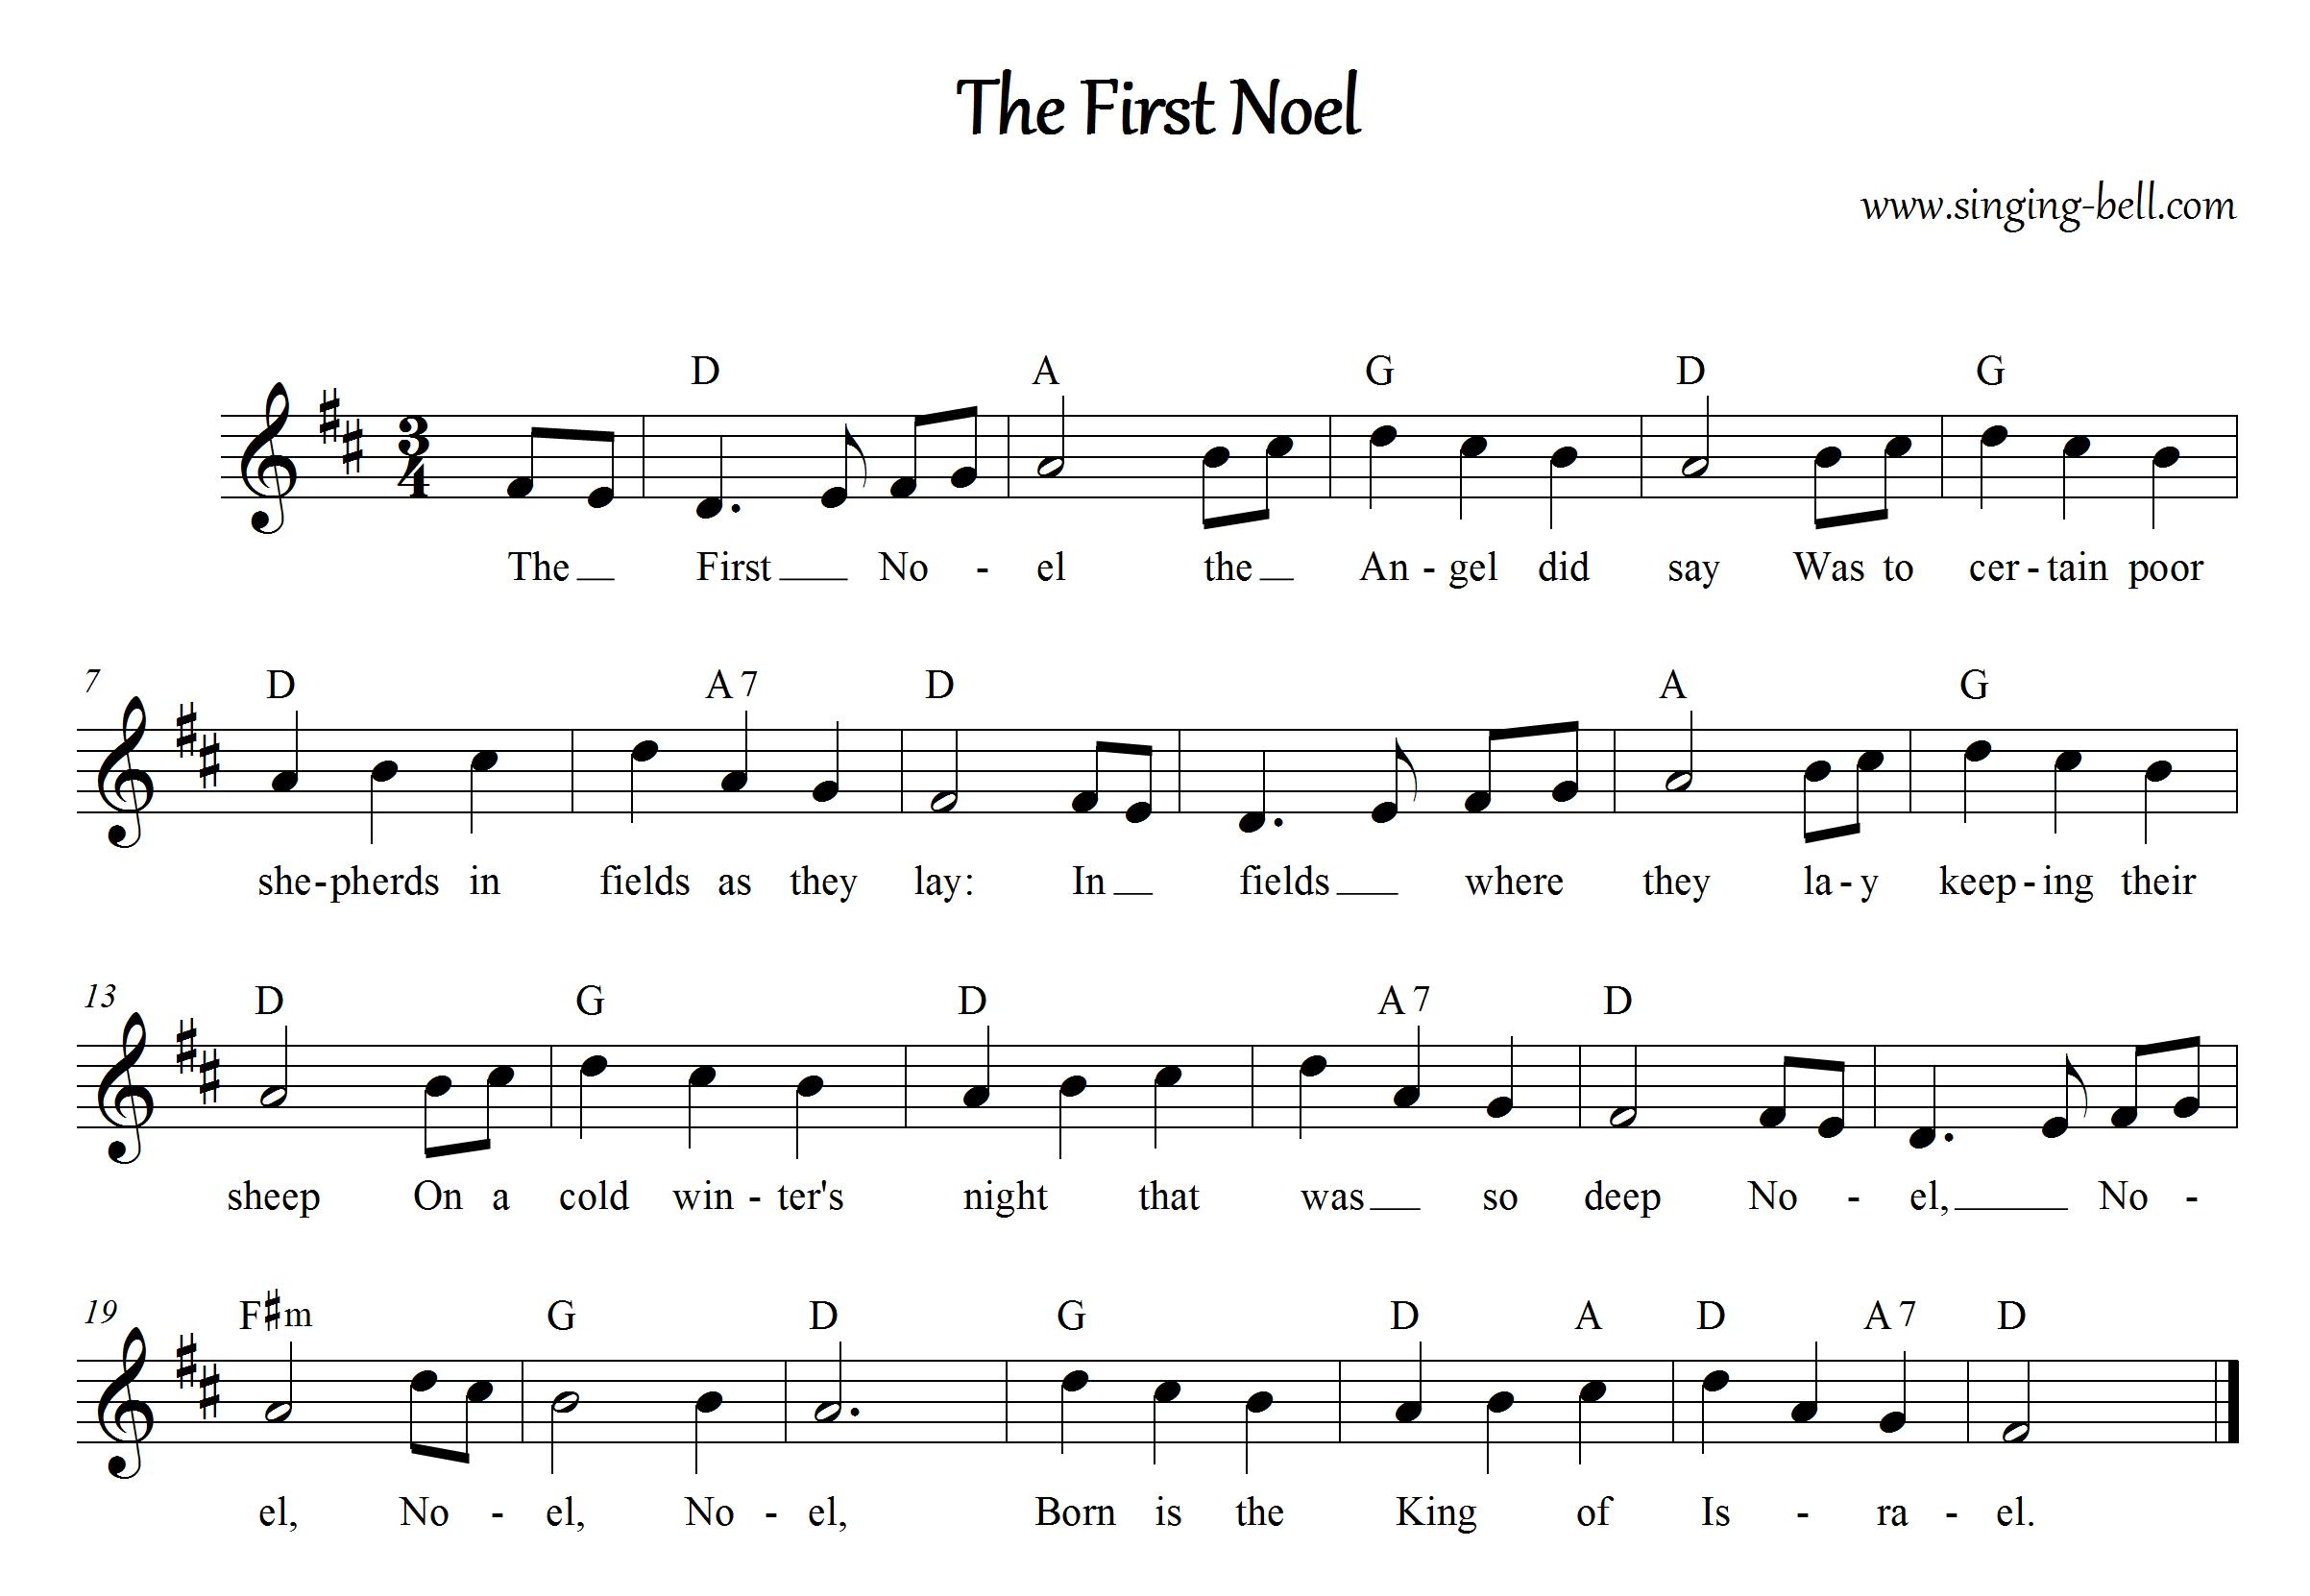 Free Christmas Carols Gt The First Noel Free Mp3 Audio